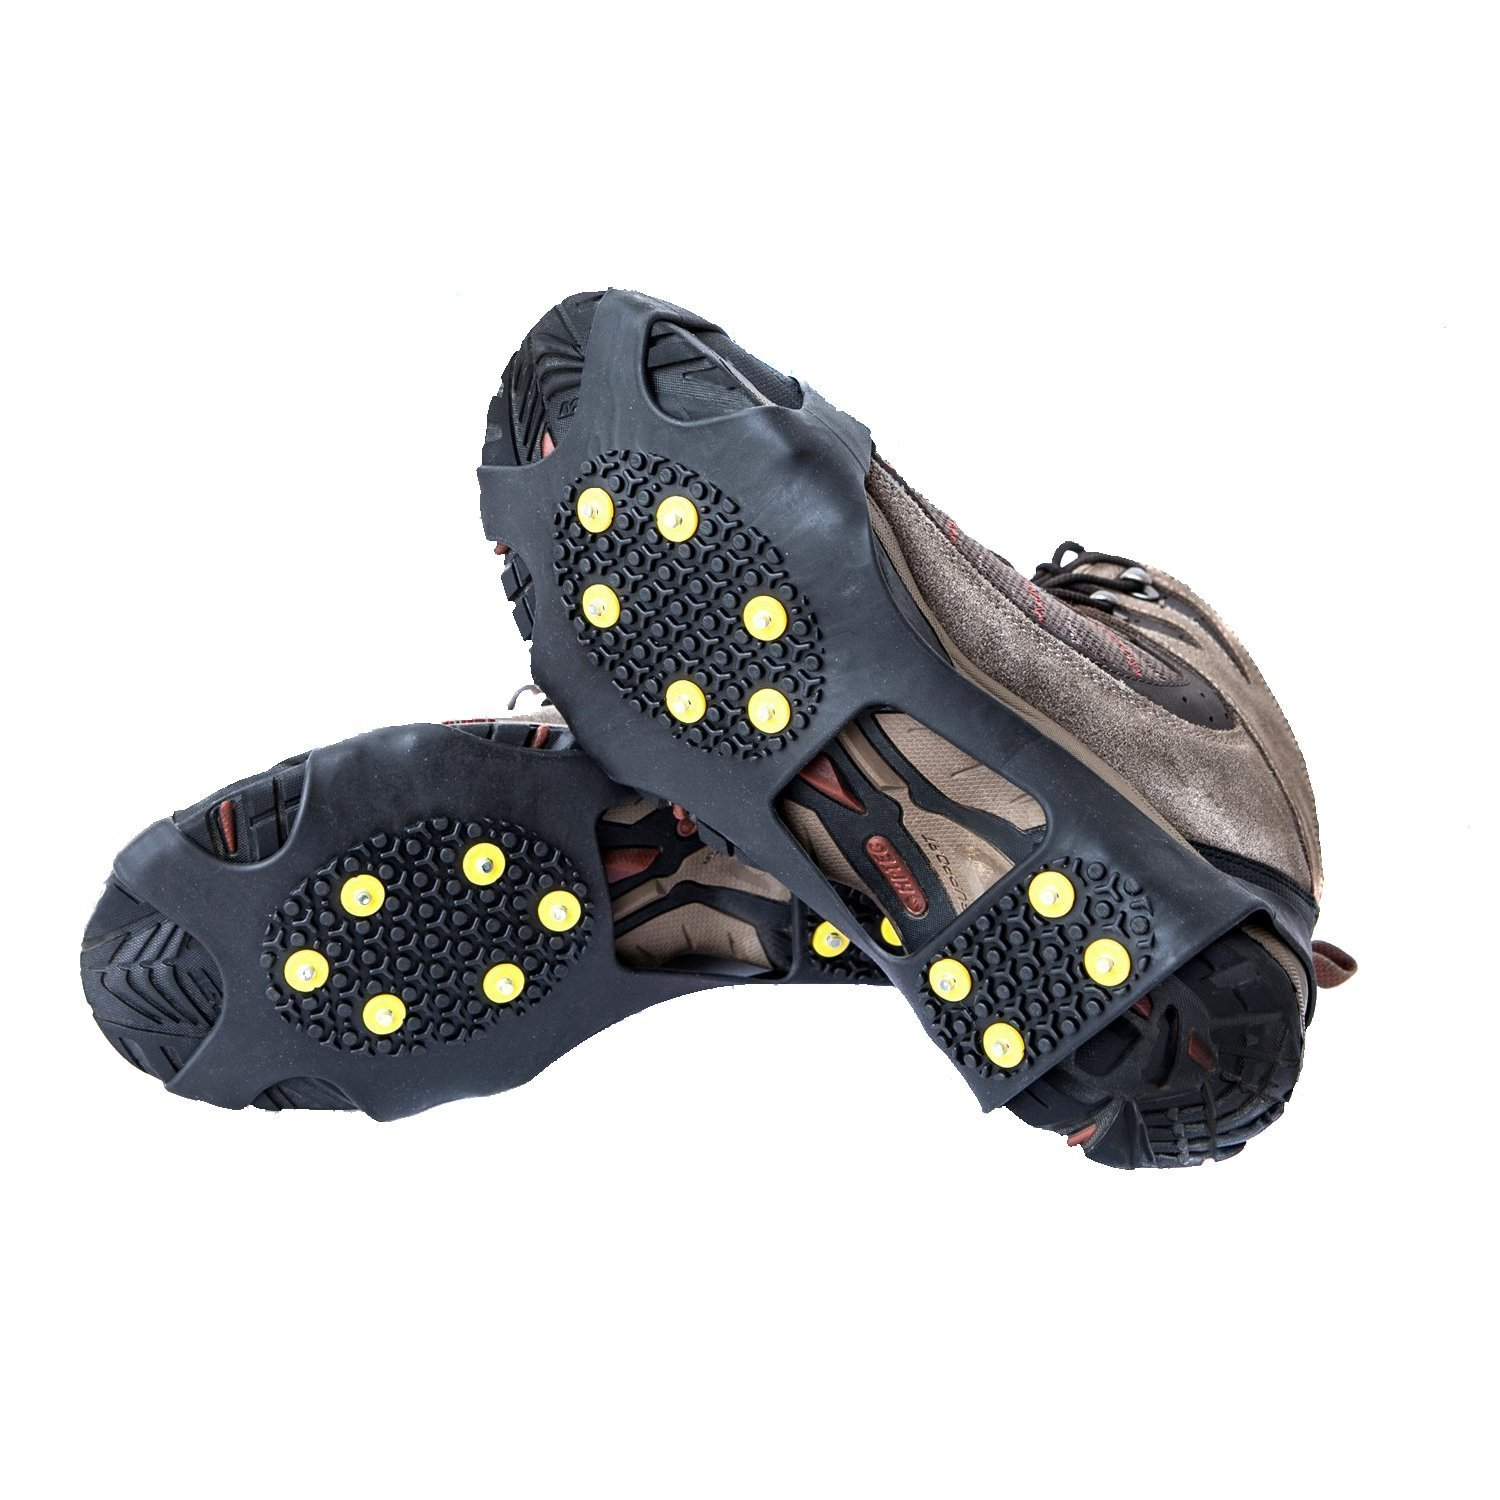 Amazon.com: OuterStar Ice & Snow Grips Over Shoe/Boot Traction ...